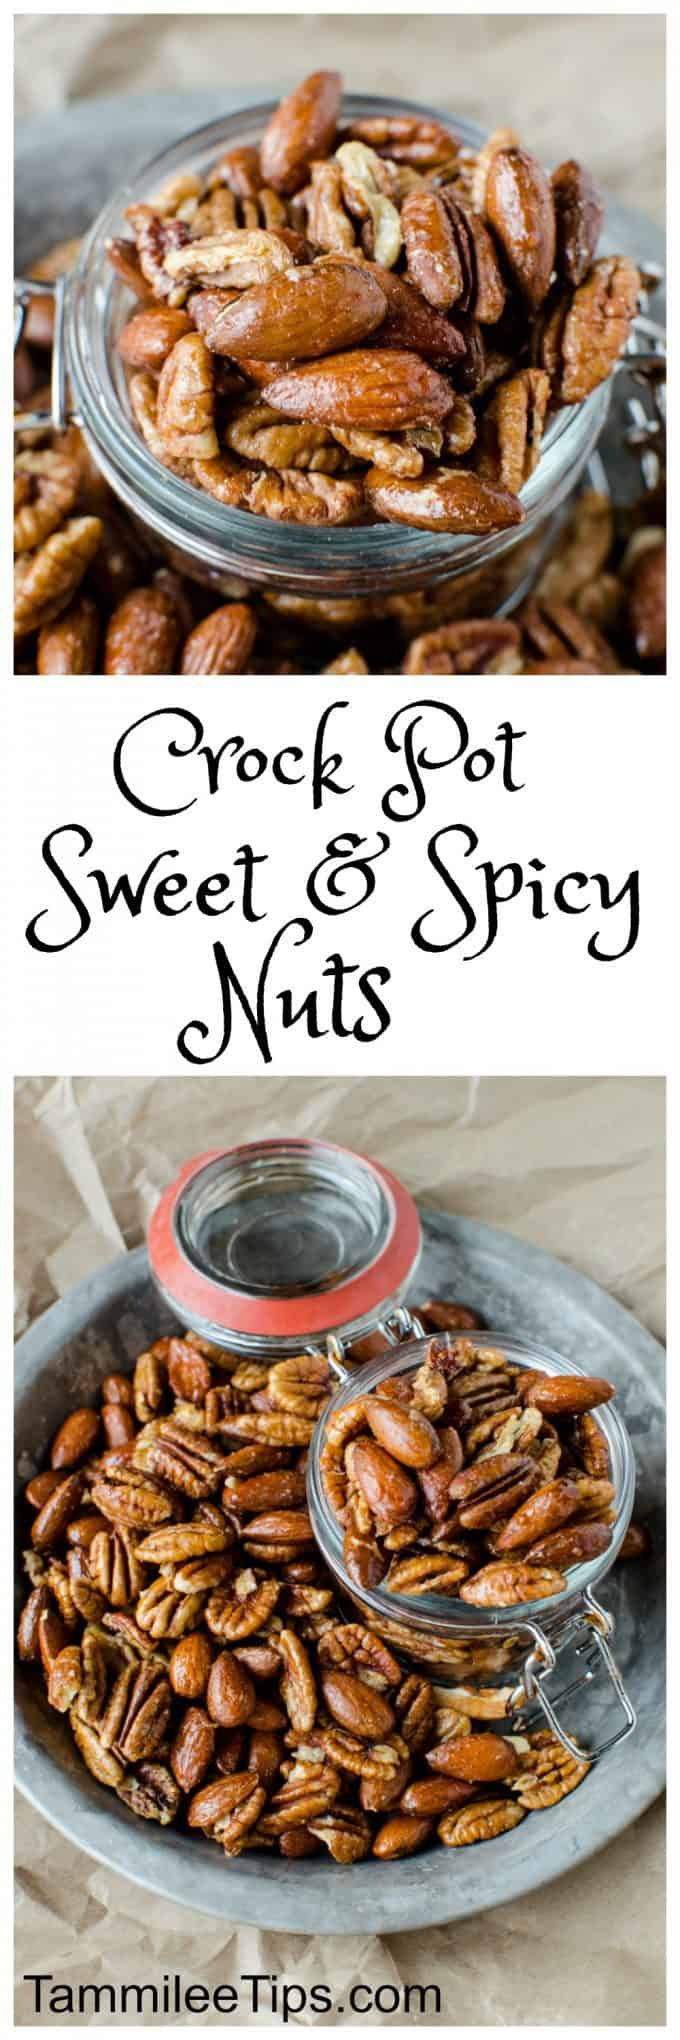 Crock Pot Sweet and Spicy Nuts Recipe perfect for Christmas! Super easy recipe that is great for DIY Holiday gifts. The crockpot/slow cooker does all the work and you have a great gift or snack! #crockpot #slowcooker #holidays #DIY #Gifts #christmas